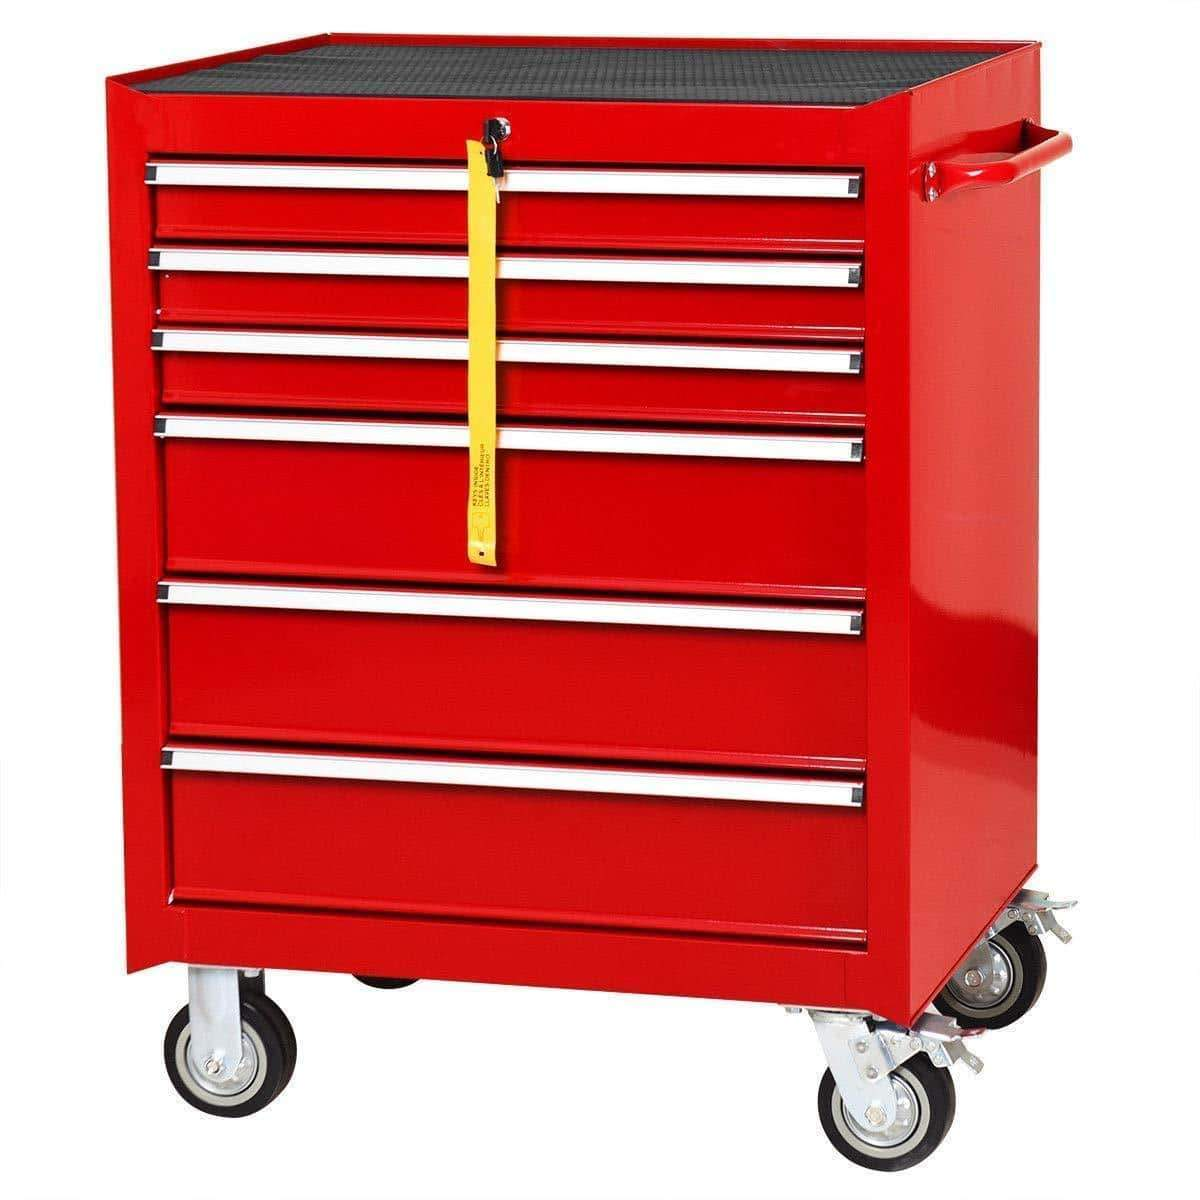 "Goplus 30"" x 24.5"" Tool Box Cart Portable 6-Drawer Rolling Storage Cabinet Multi-Purpose Tool Chest Steel Garage Toolbox Organizer with Wheels and Keyed Locking System (Classic Red)"